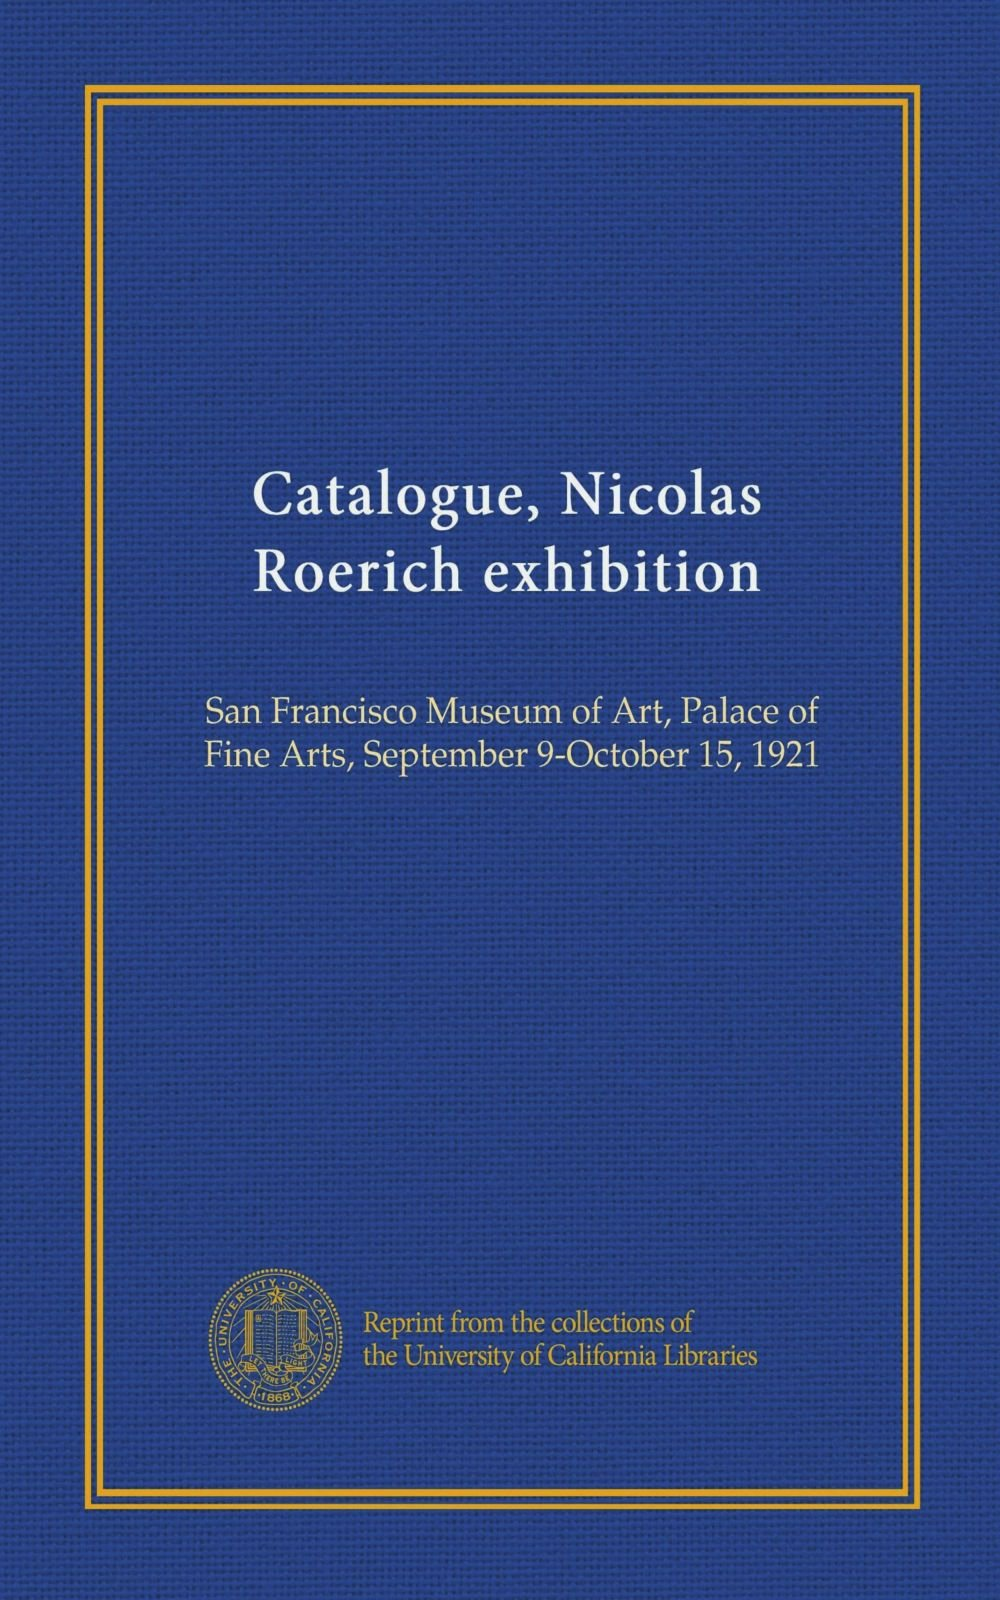 Catalogue, Nicolas Roerich exhibition: San Francisco Museum of Art, Palace of Fine Arts, September 9-October 15, 1921 pdf